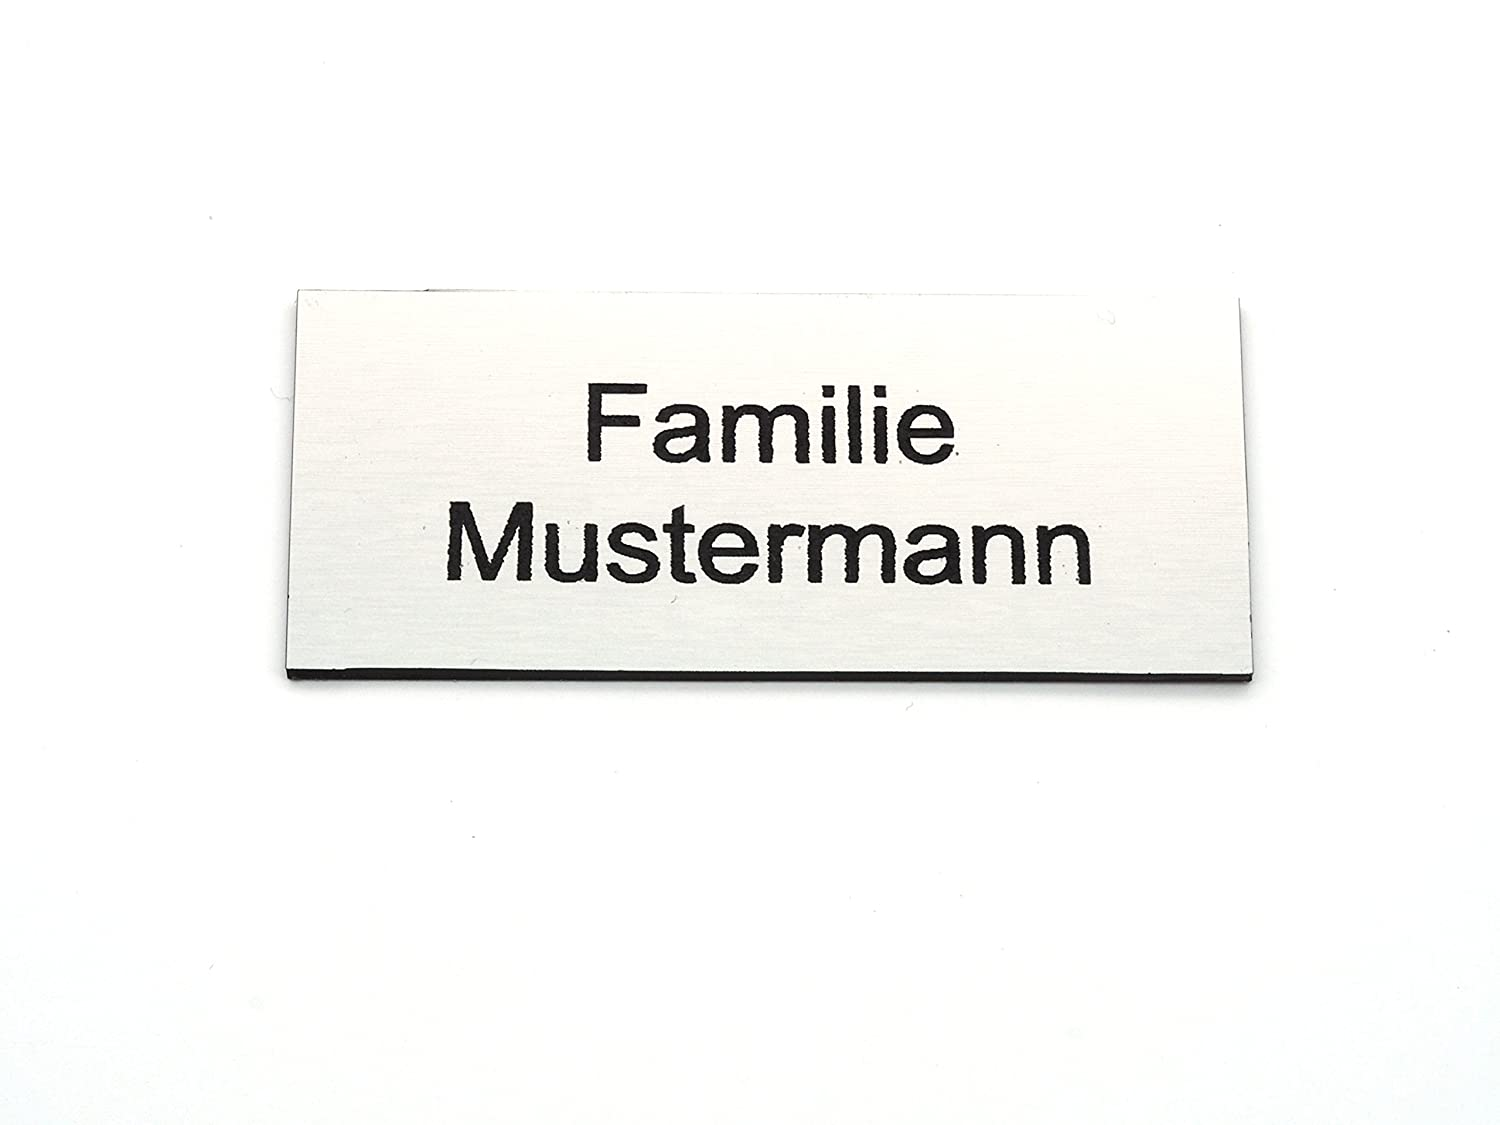 Letterbox sign, door plate, name plate, labels, engraving, self-adhesive, weatherproof, laser engraving, sizes 60 mm x 20 mm and 80 mm x 35 mm, silver CopterFarm